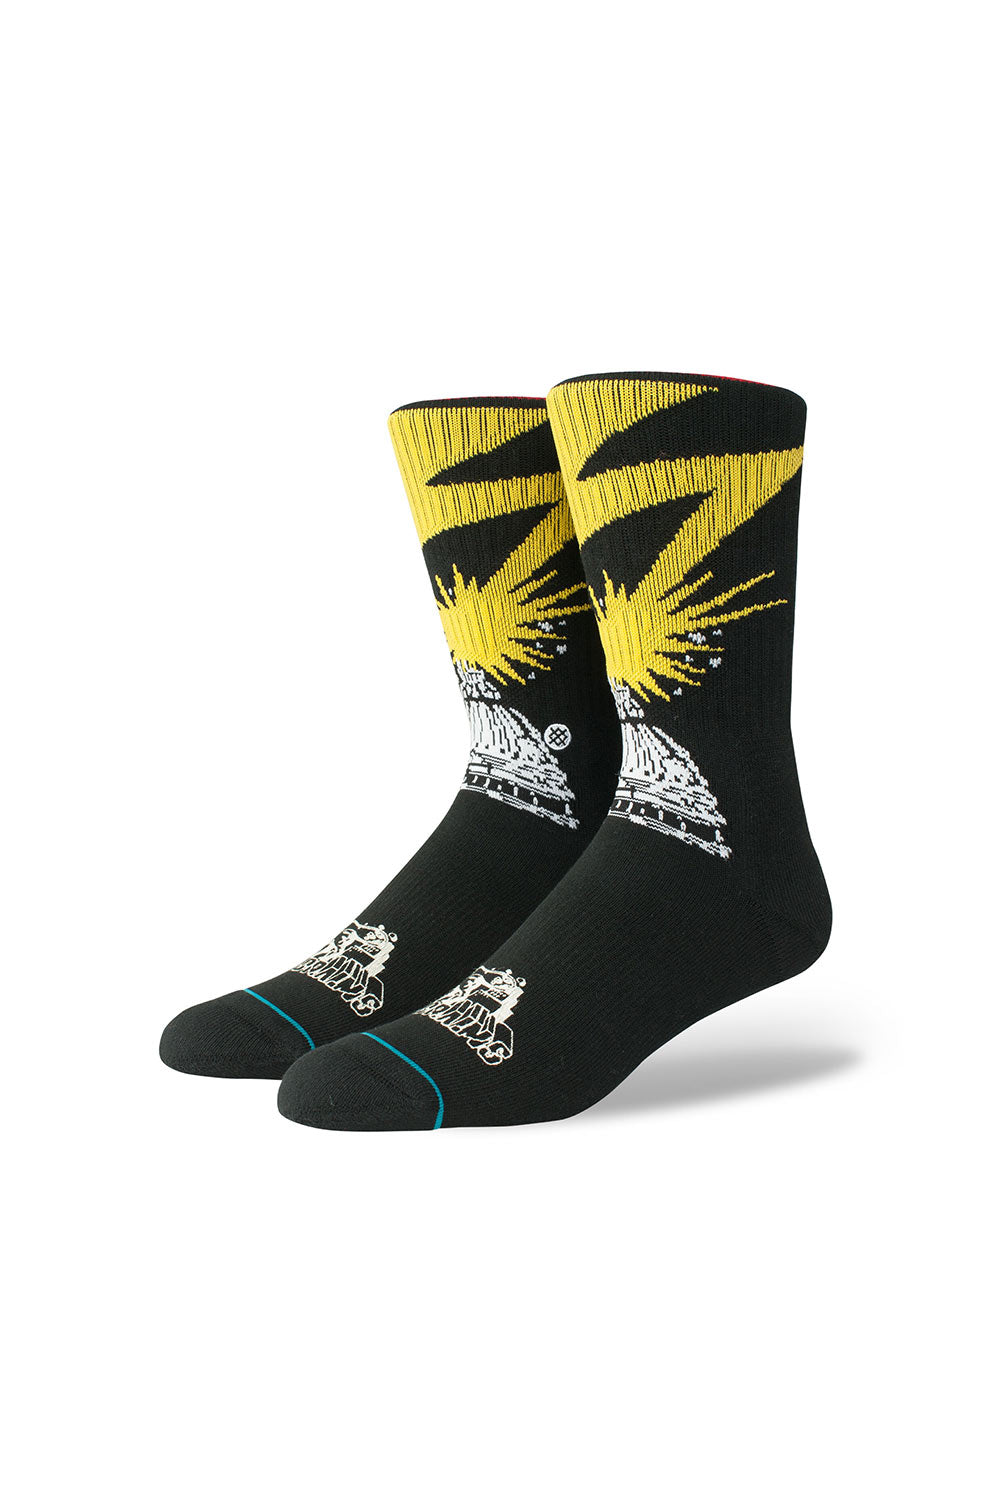 Stance Bad Brains Socks